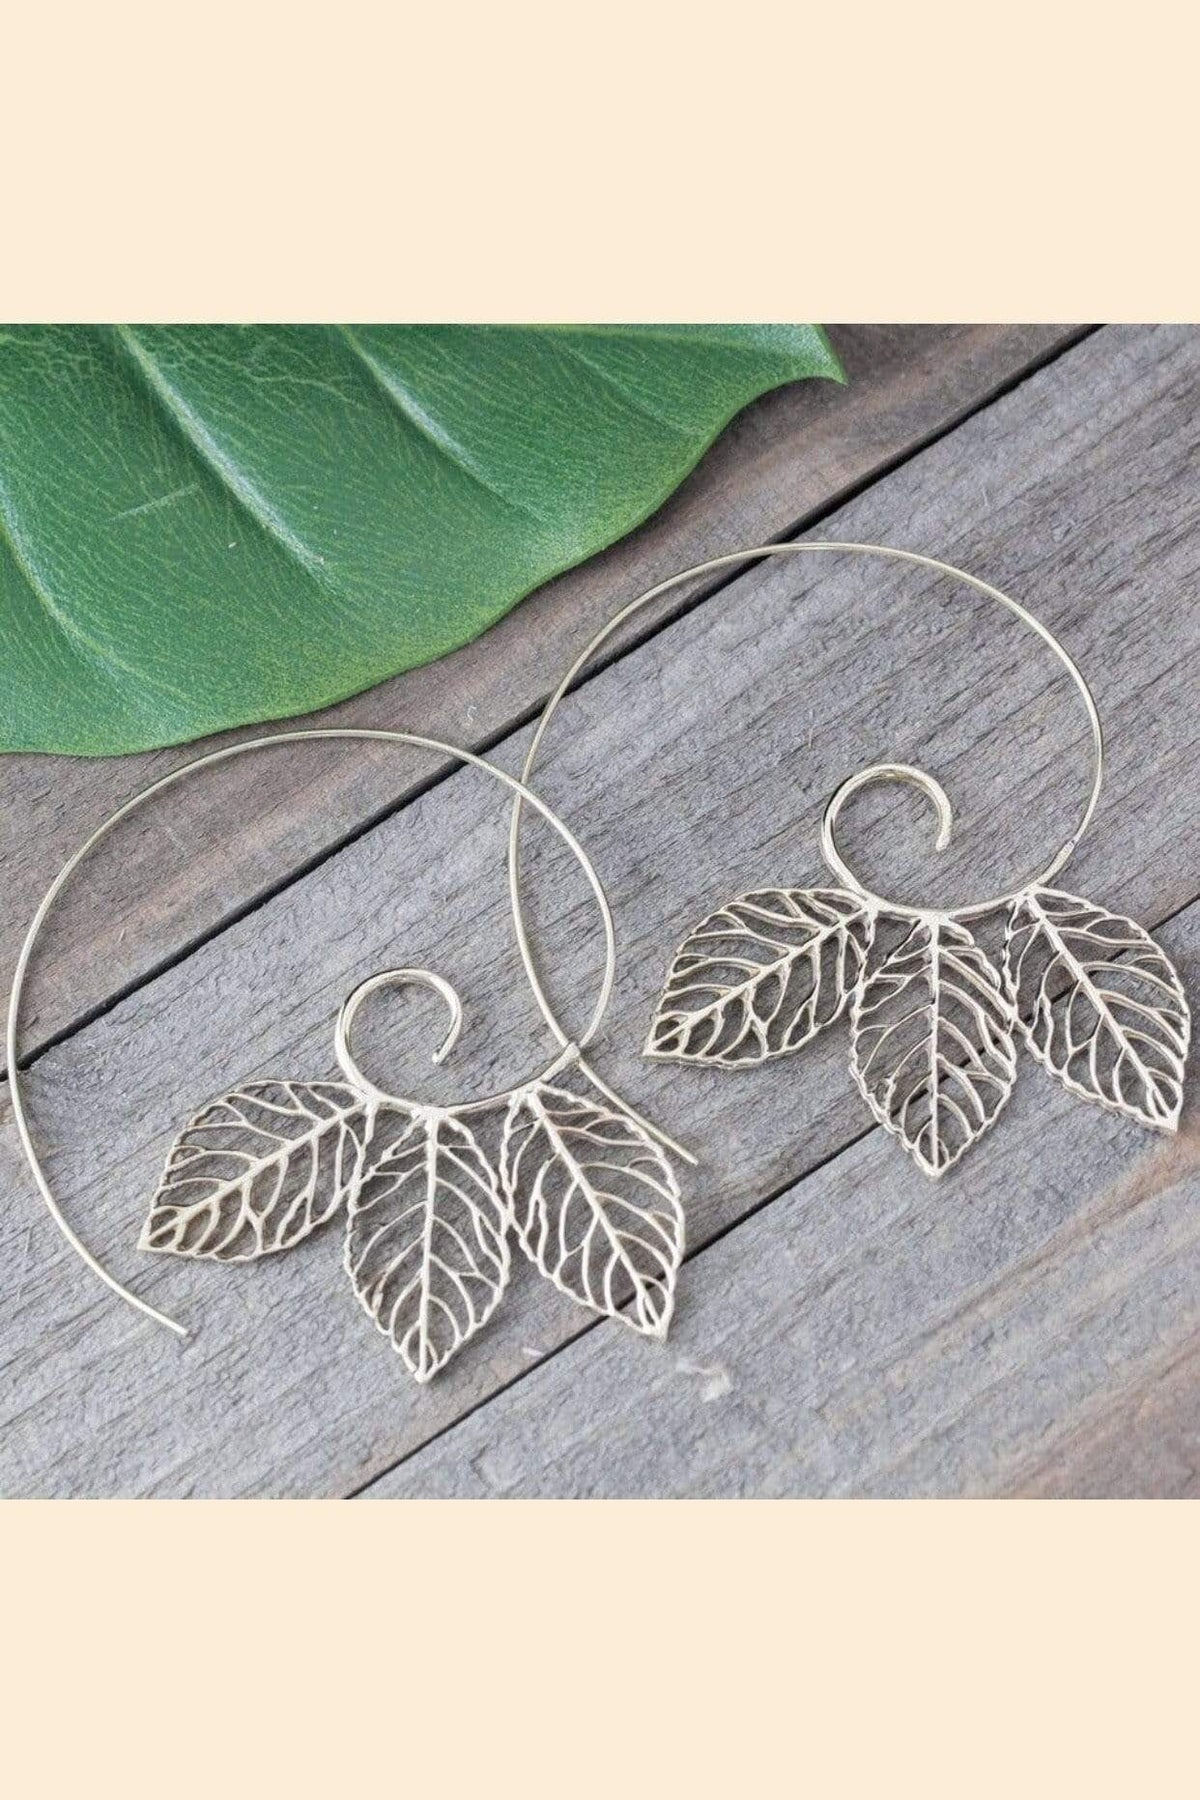 Baizaar EARRING Brass Triple Leaf Earrings